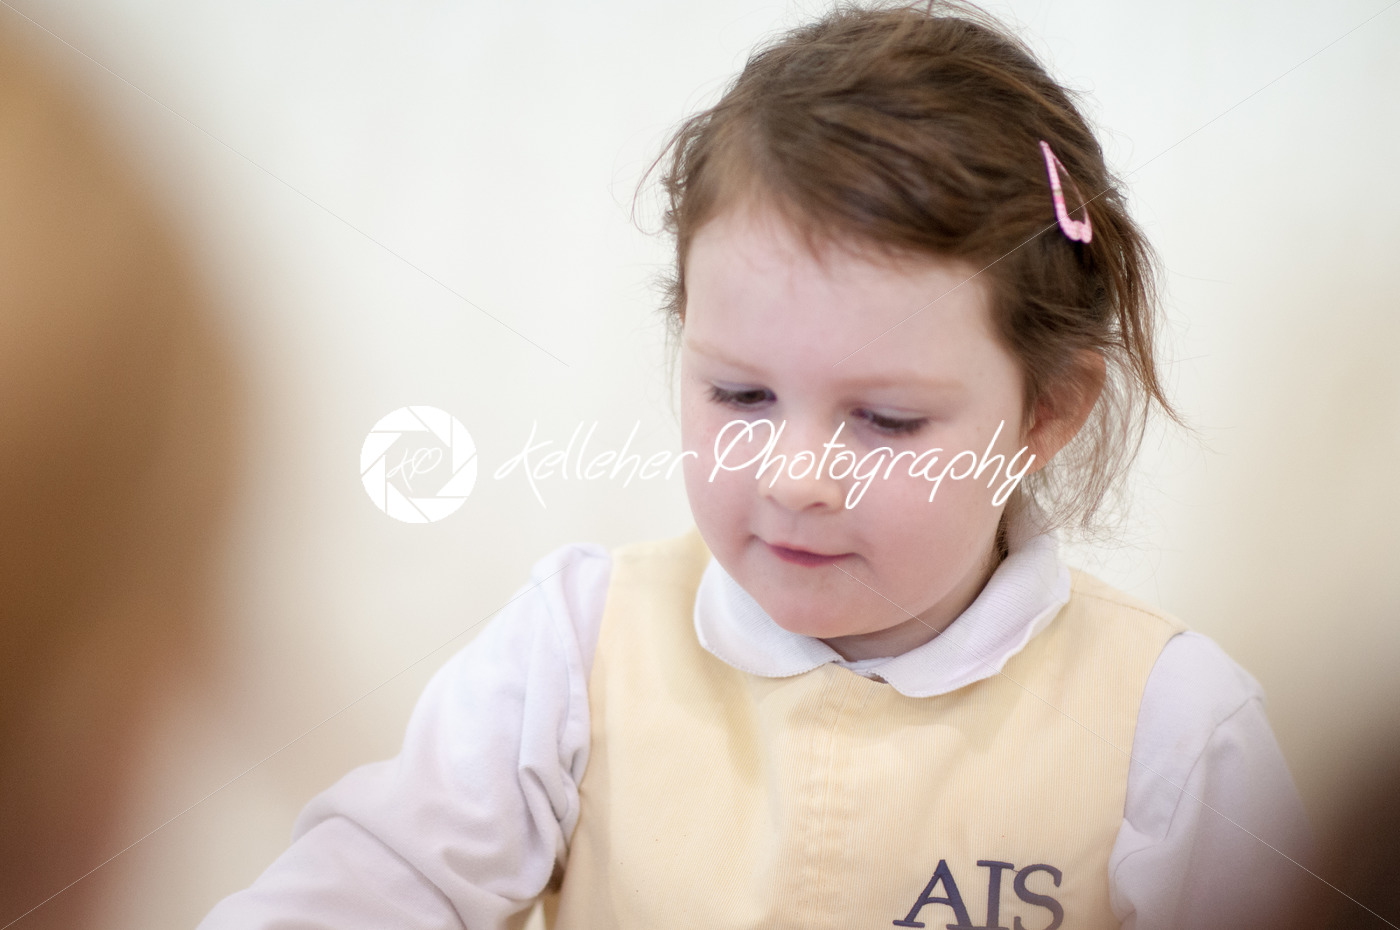 ROSEMONT, PA – MARCH 11: Agnes Irwin Invention Convention March 11, 2015 - Kelleher Photography Store